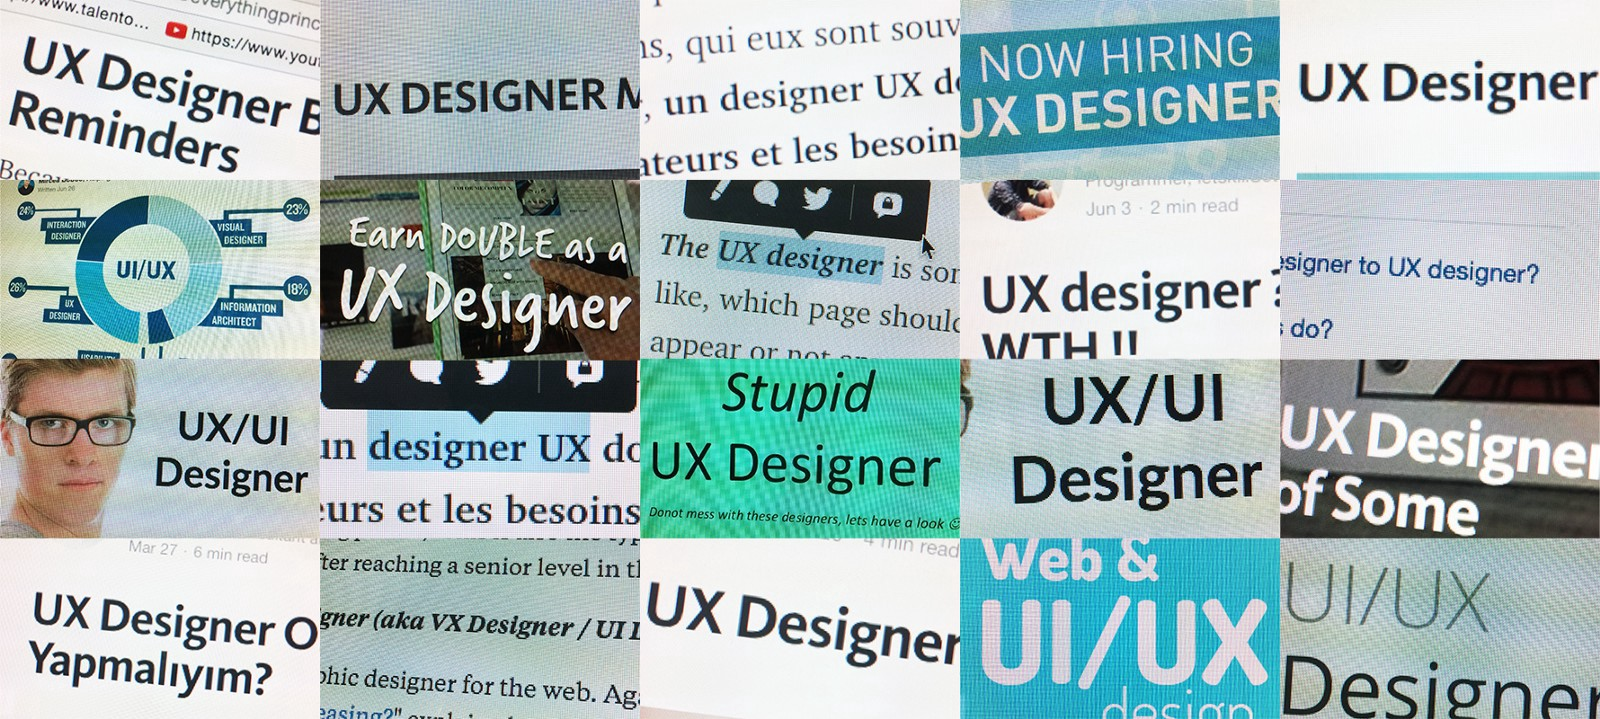 Three reasons to Designers not to use the term UX Designer